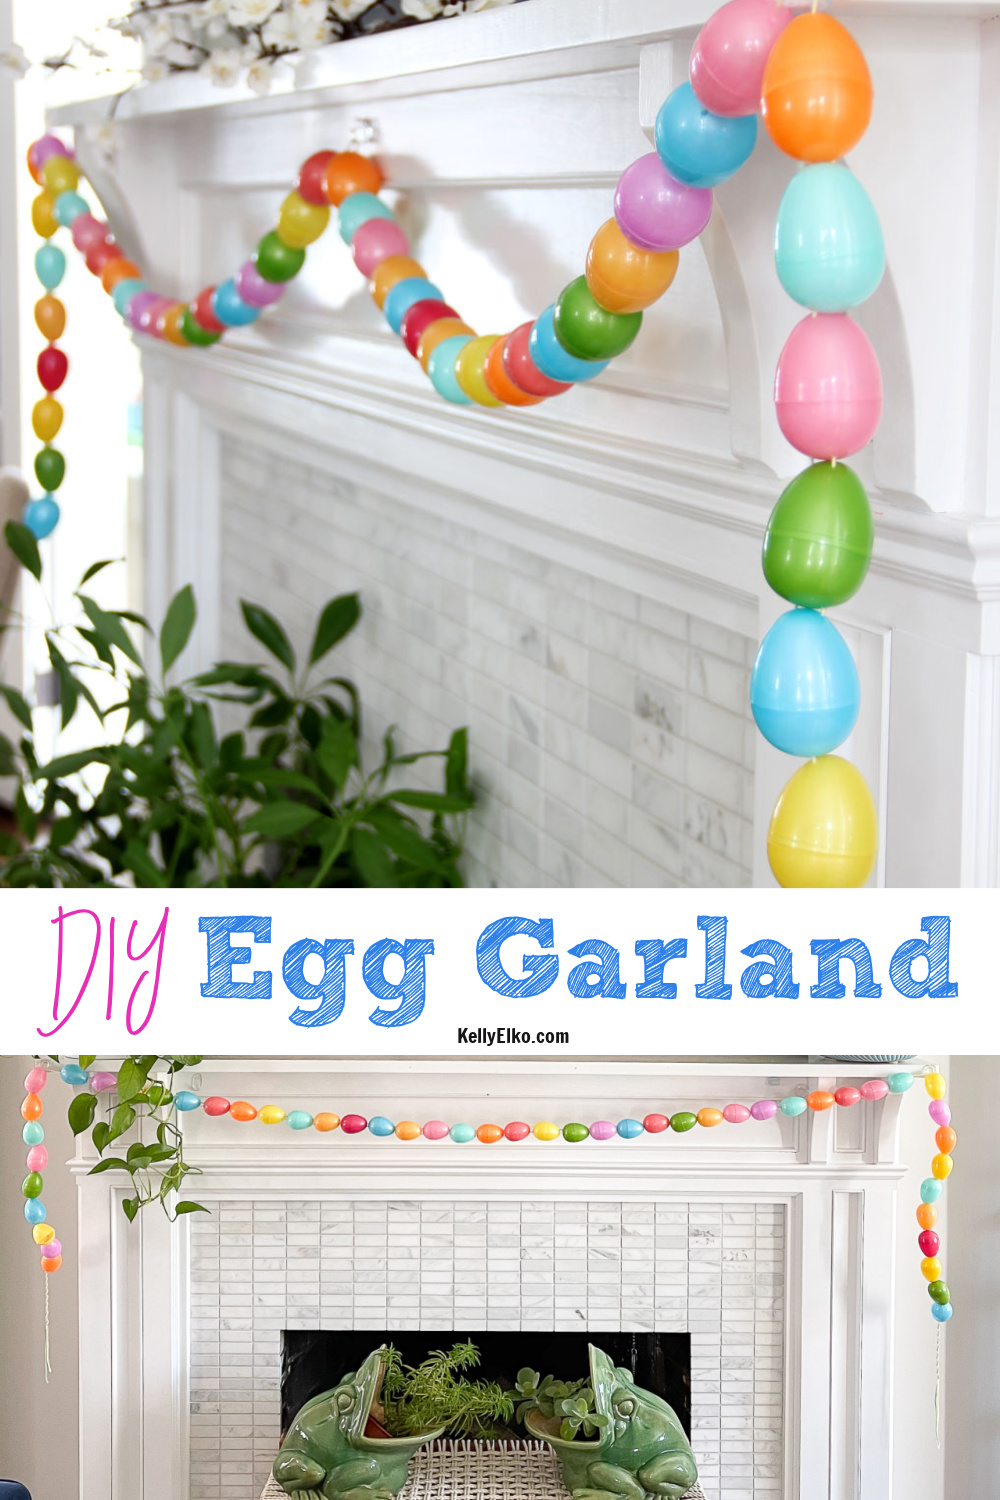 DIY Egg Garland - such a fun spring craft kellyelko.com